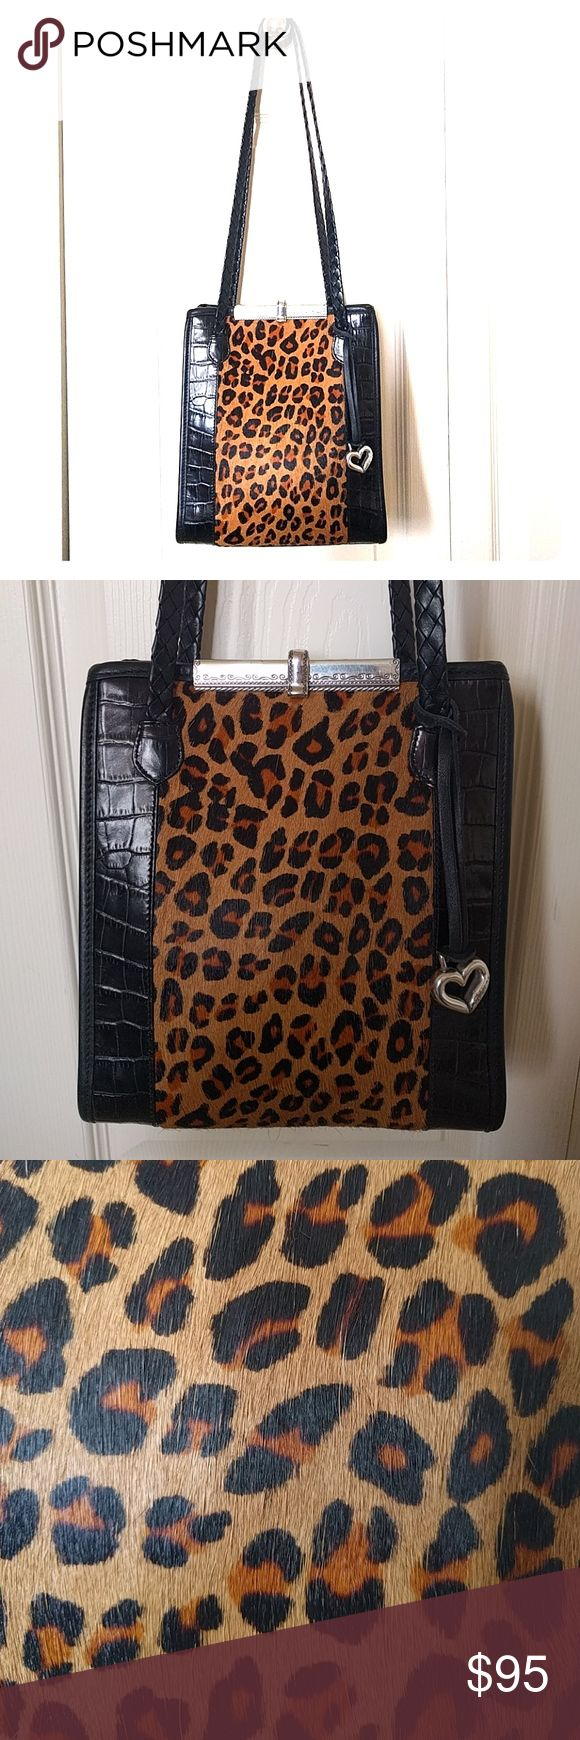 Brighton Leopard Calf Hair Shoulder Bag Gorgeous Brighton leopard print calf hair bag.  Used condition.  No bald patches on calf hair.   Small scratches on metal clasp. See photos. Some marks on black leather back, again see photos.  Great overall condition. No rips or tears. No wear on corners of bag. Brighton Bags Shoulder Bags